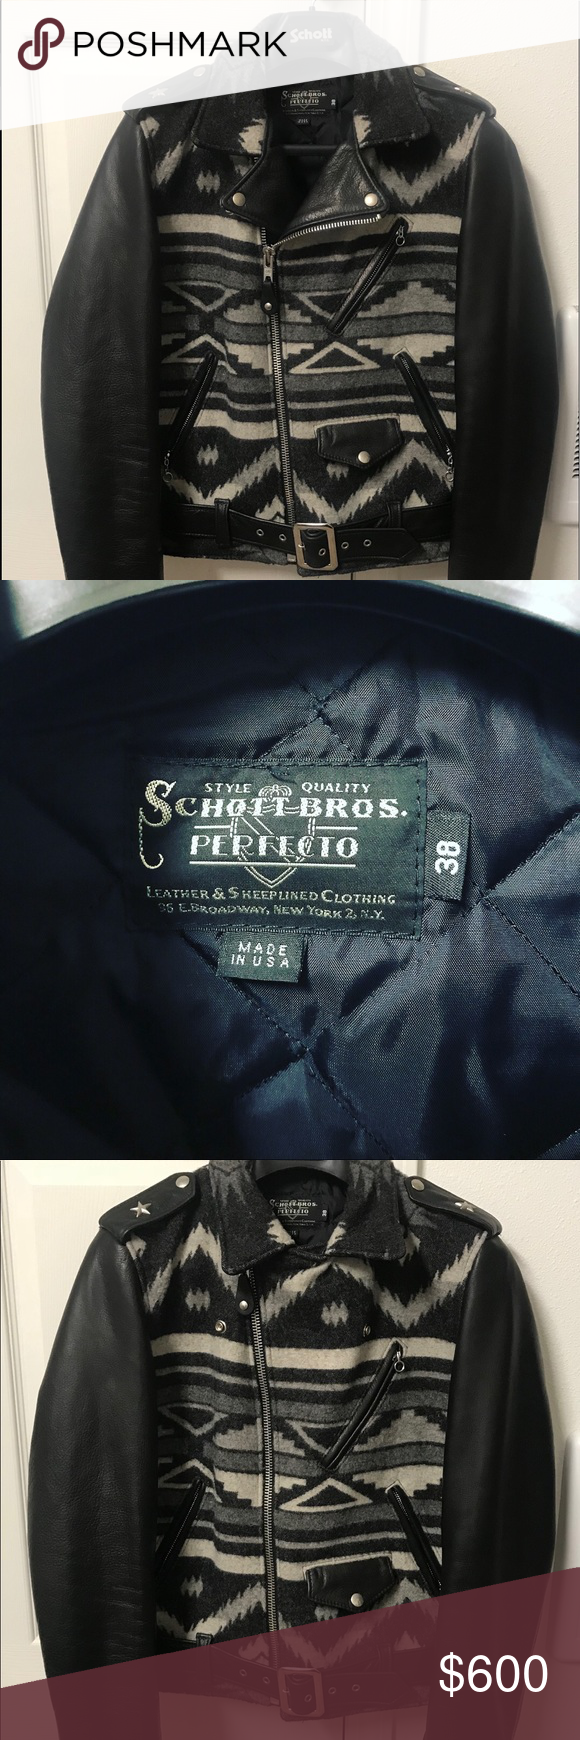 Schott Nyc Perfecto Leather Jacket Size 38. NWT Leather